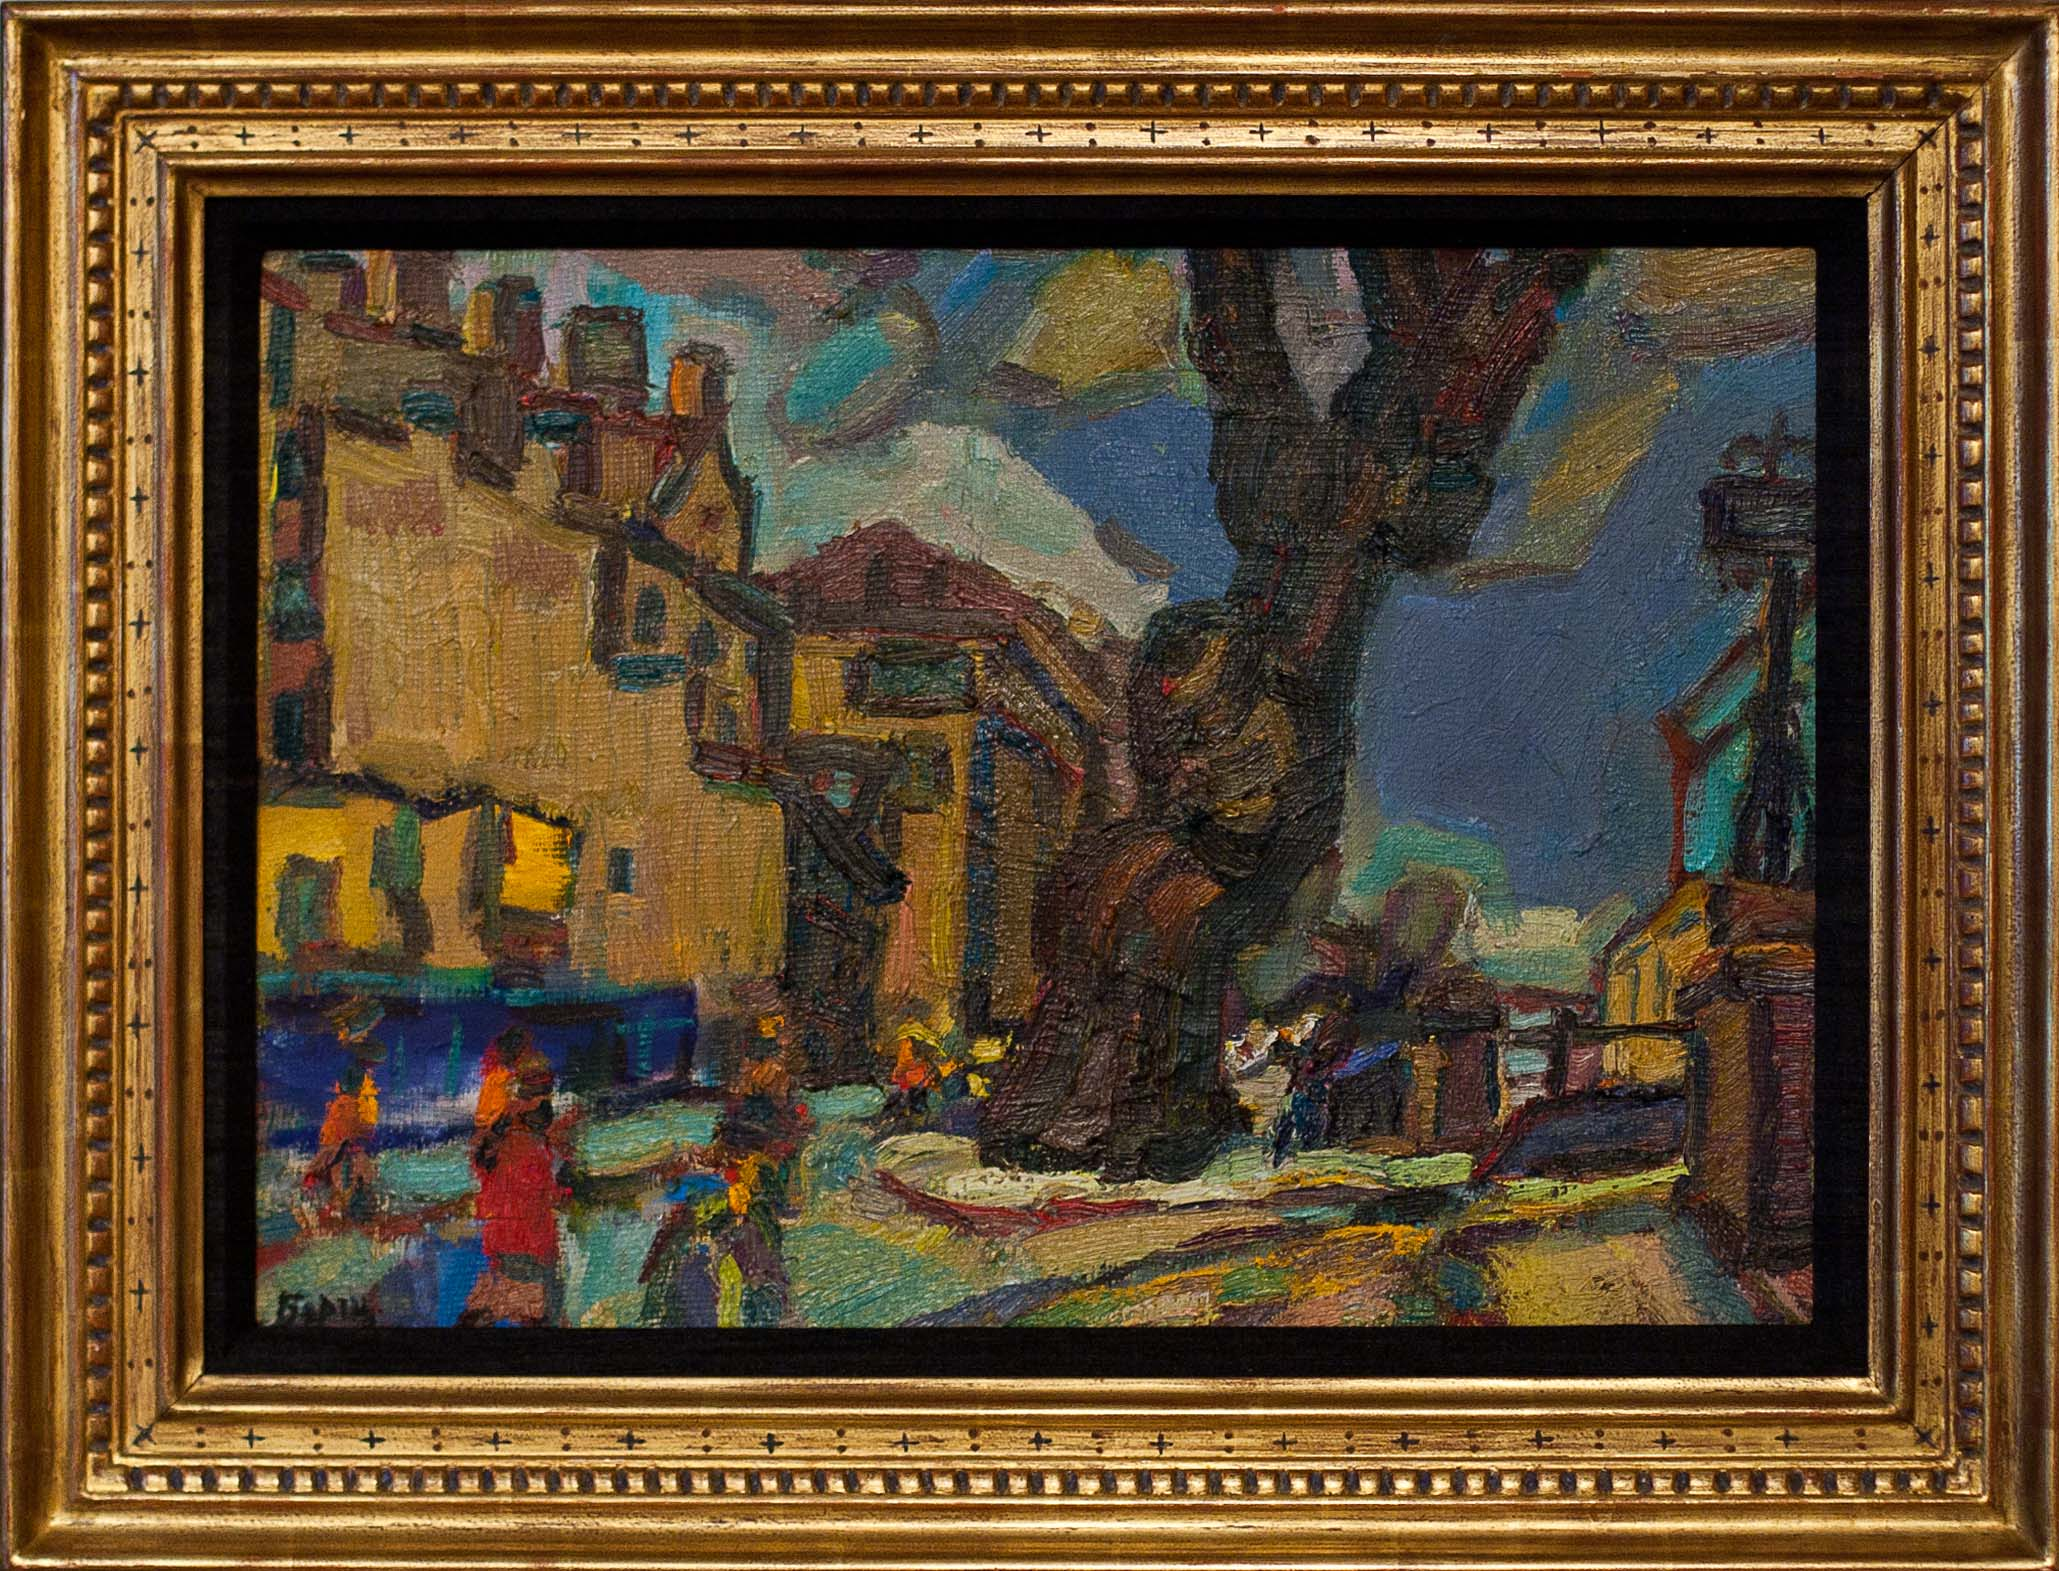 untitled by Borsch. oil on canvas. 20.0 in x 14.0 in. 1995